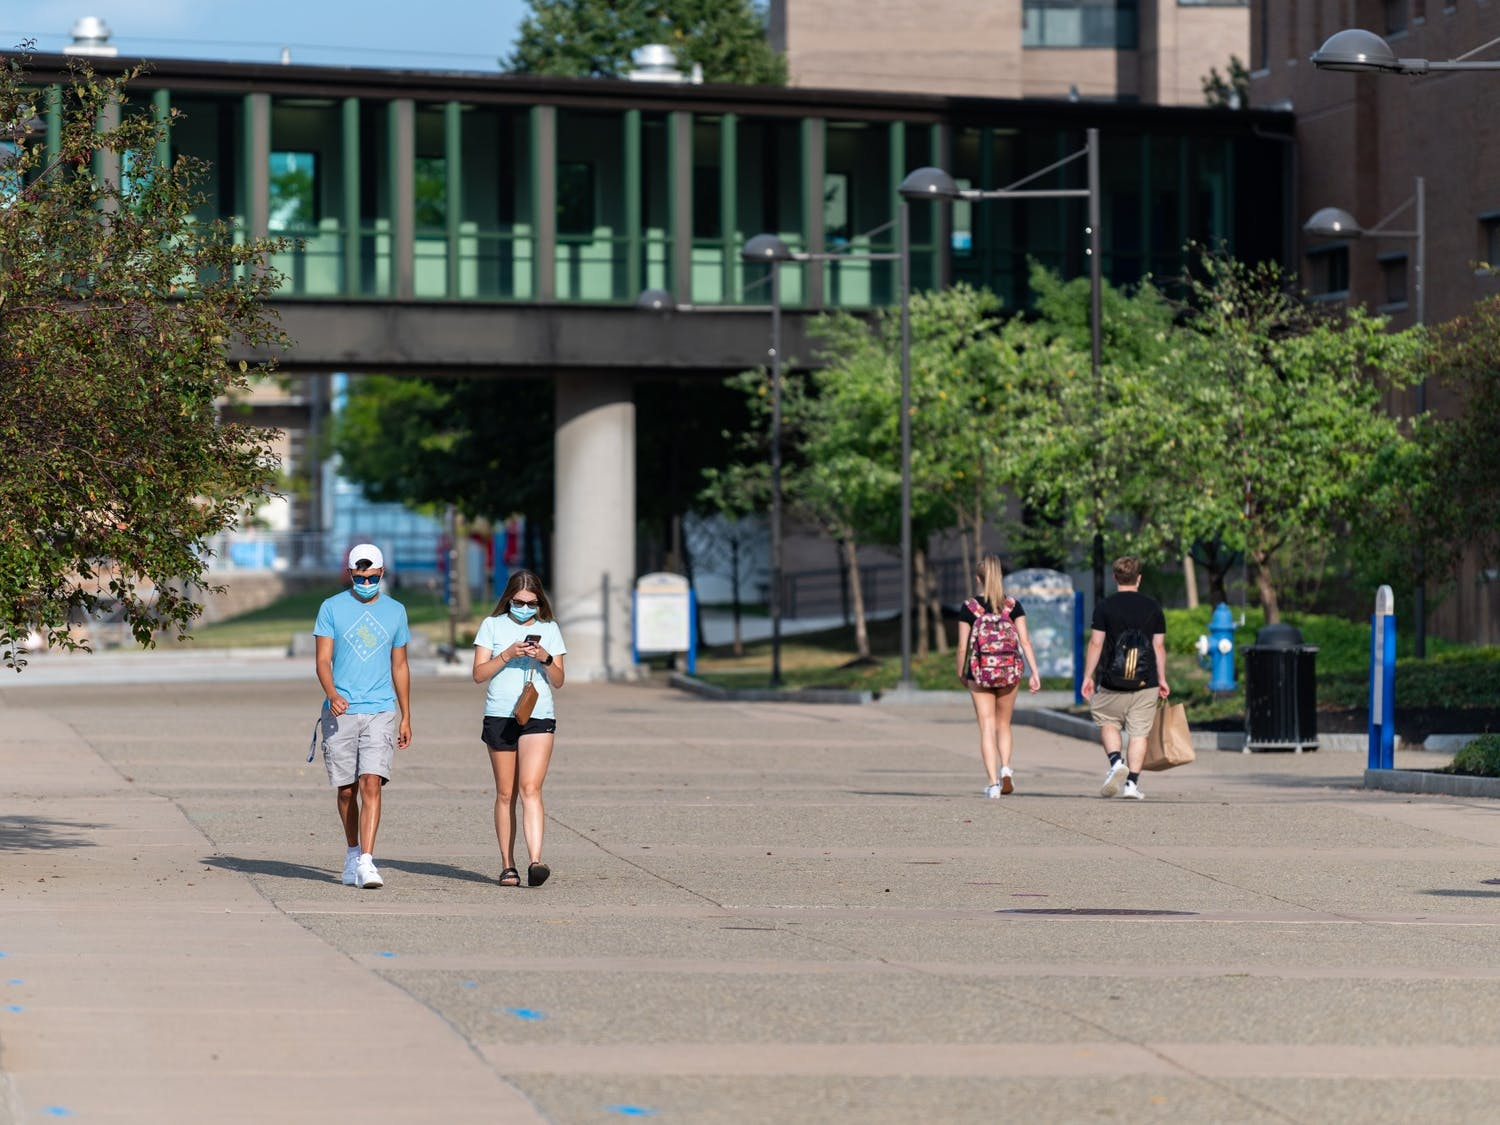 """Students say they were """"disappointed"""" by UB's response to recent anti-Asian hate crimes, saying the response was not distributed appropriately and came """"too late."""""""